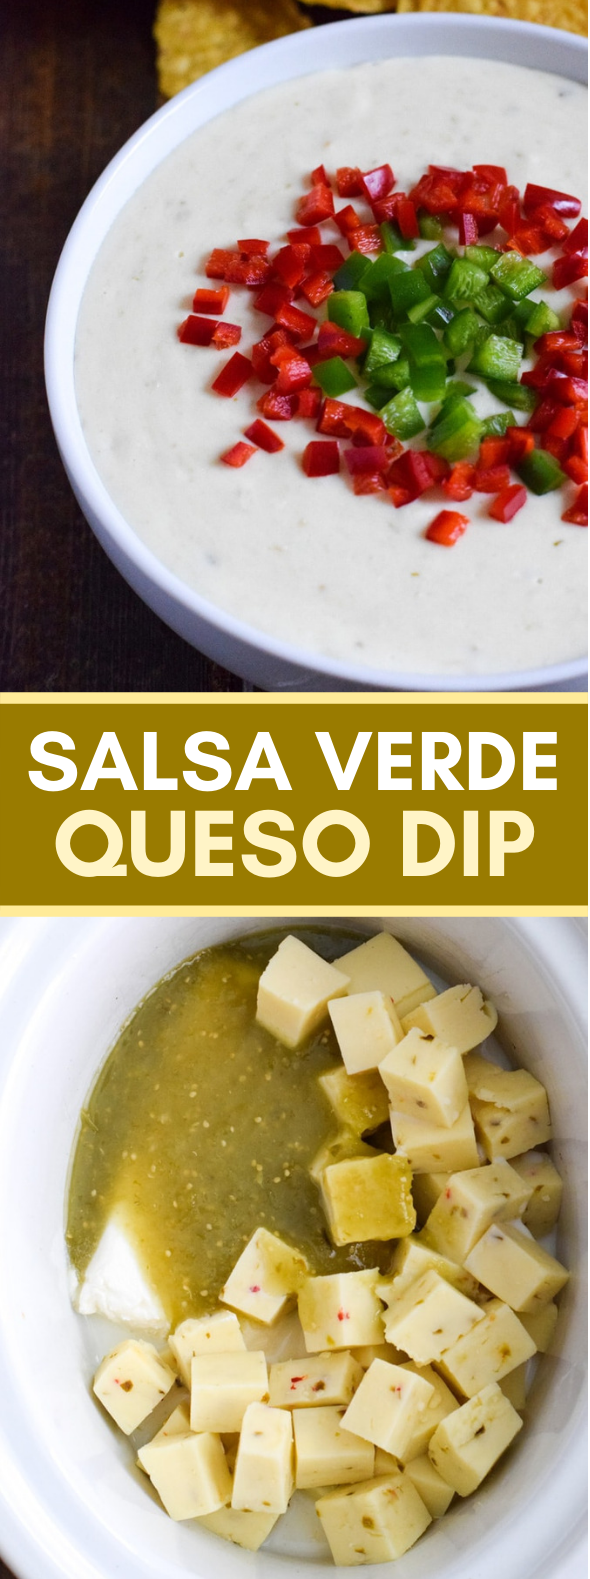 SALSA VERDE QUESO DIP #gameday #appetizers